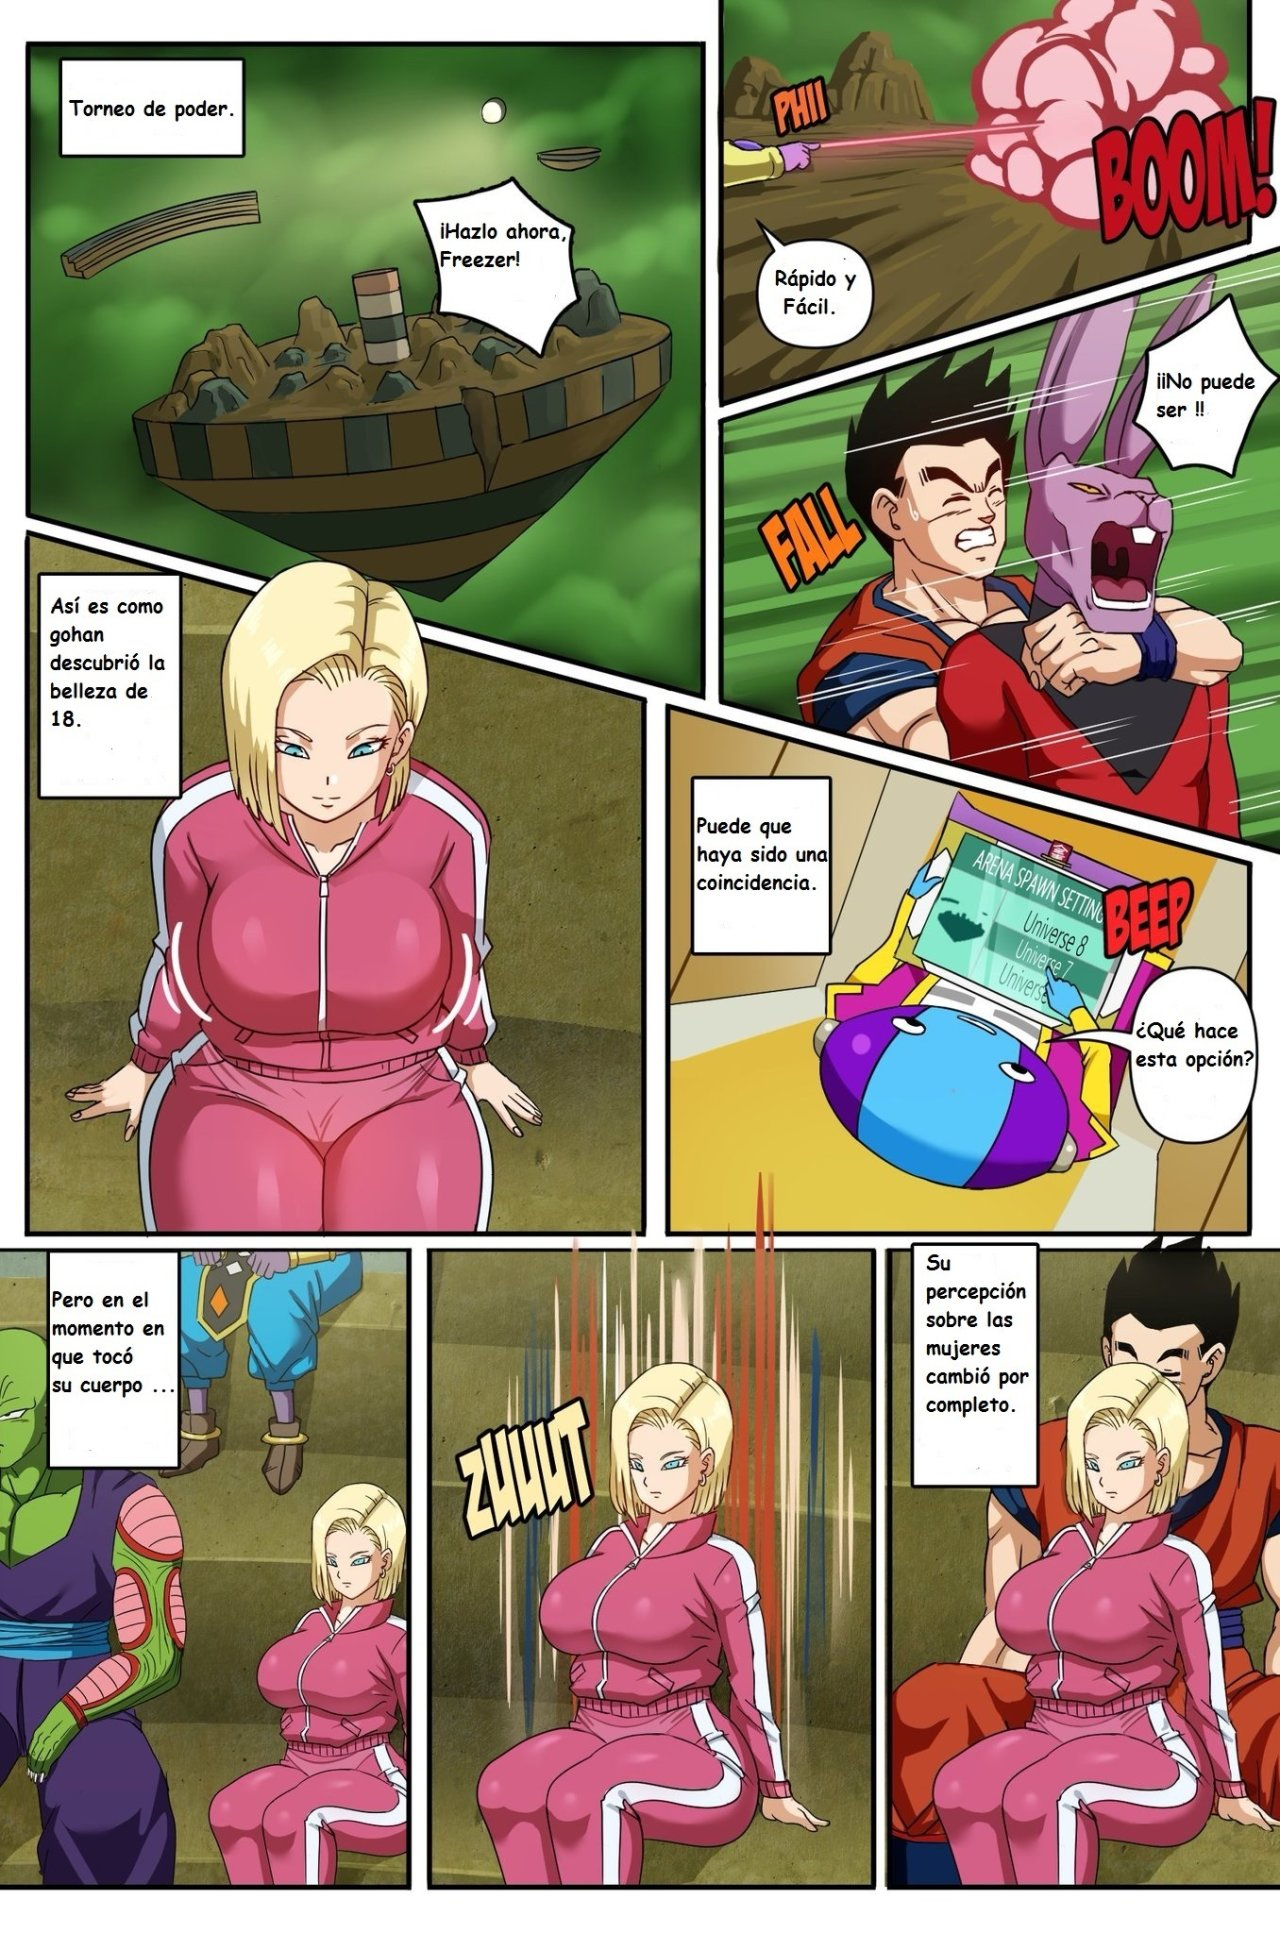 ANDROID 18 y GOHAN parte 2